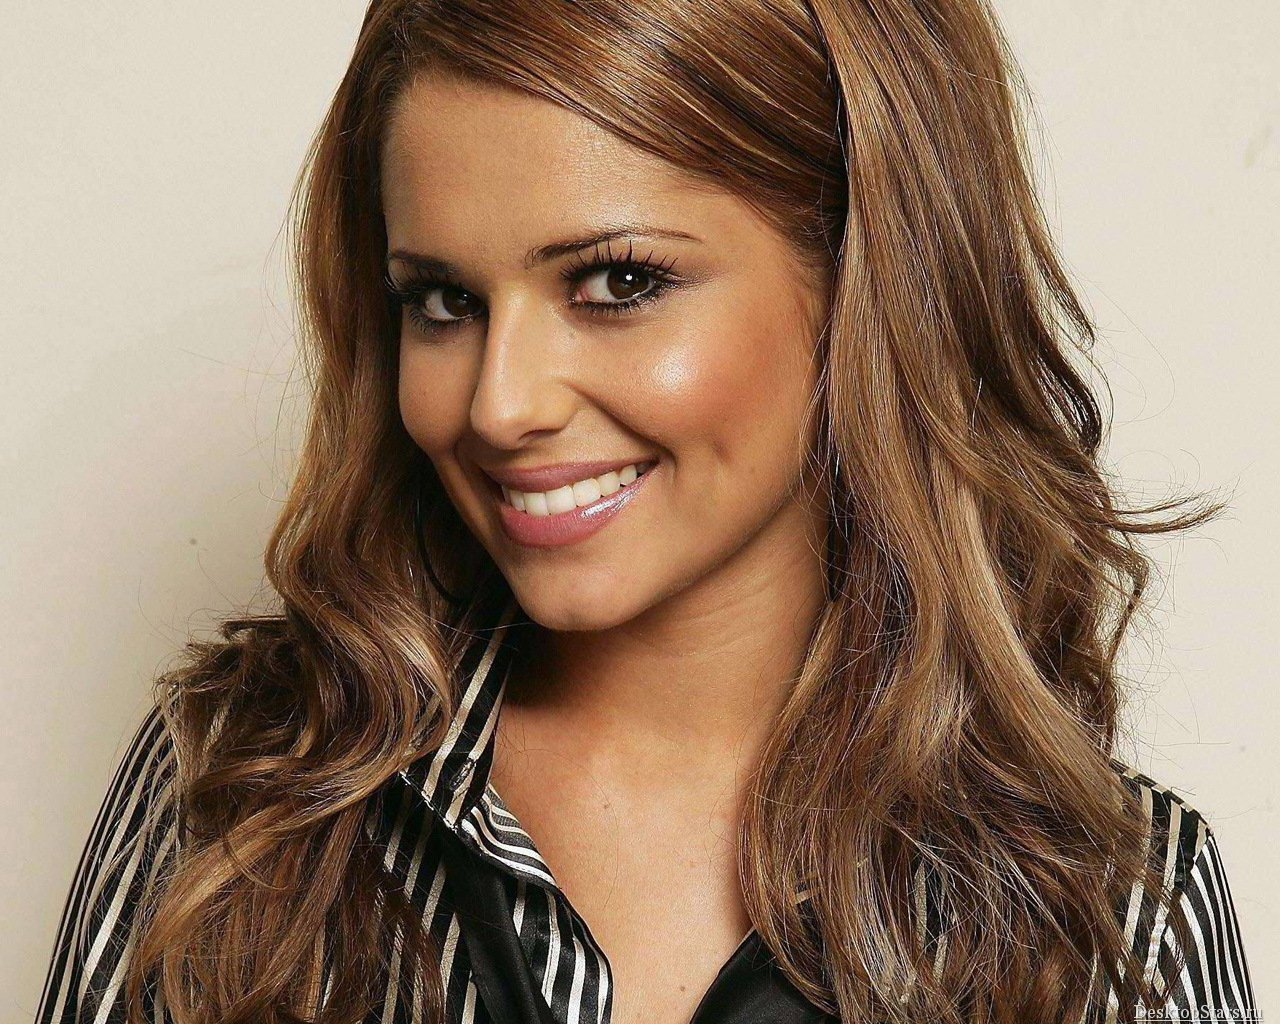 Cheryl Cole Cheryl Cole Wallpaper 4578549 Fanpop